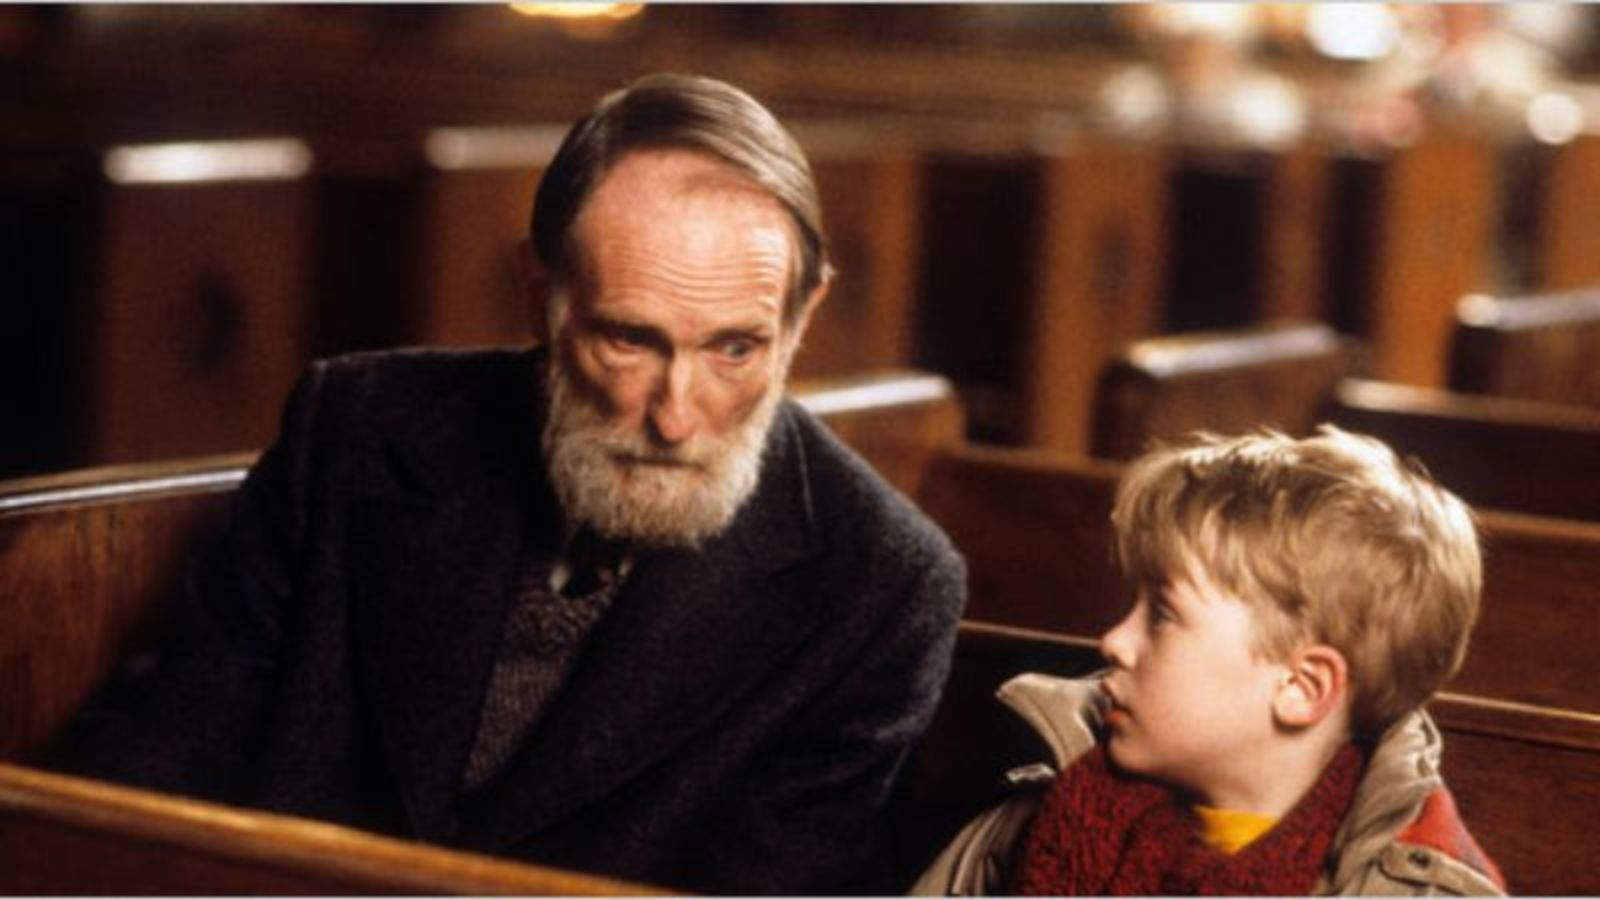 R I P Roberts Blossom Home Alone Actor Who Portrayed The